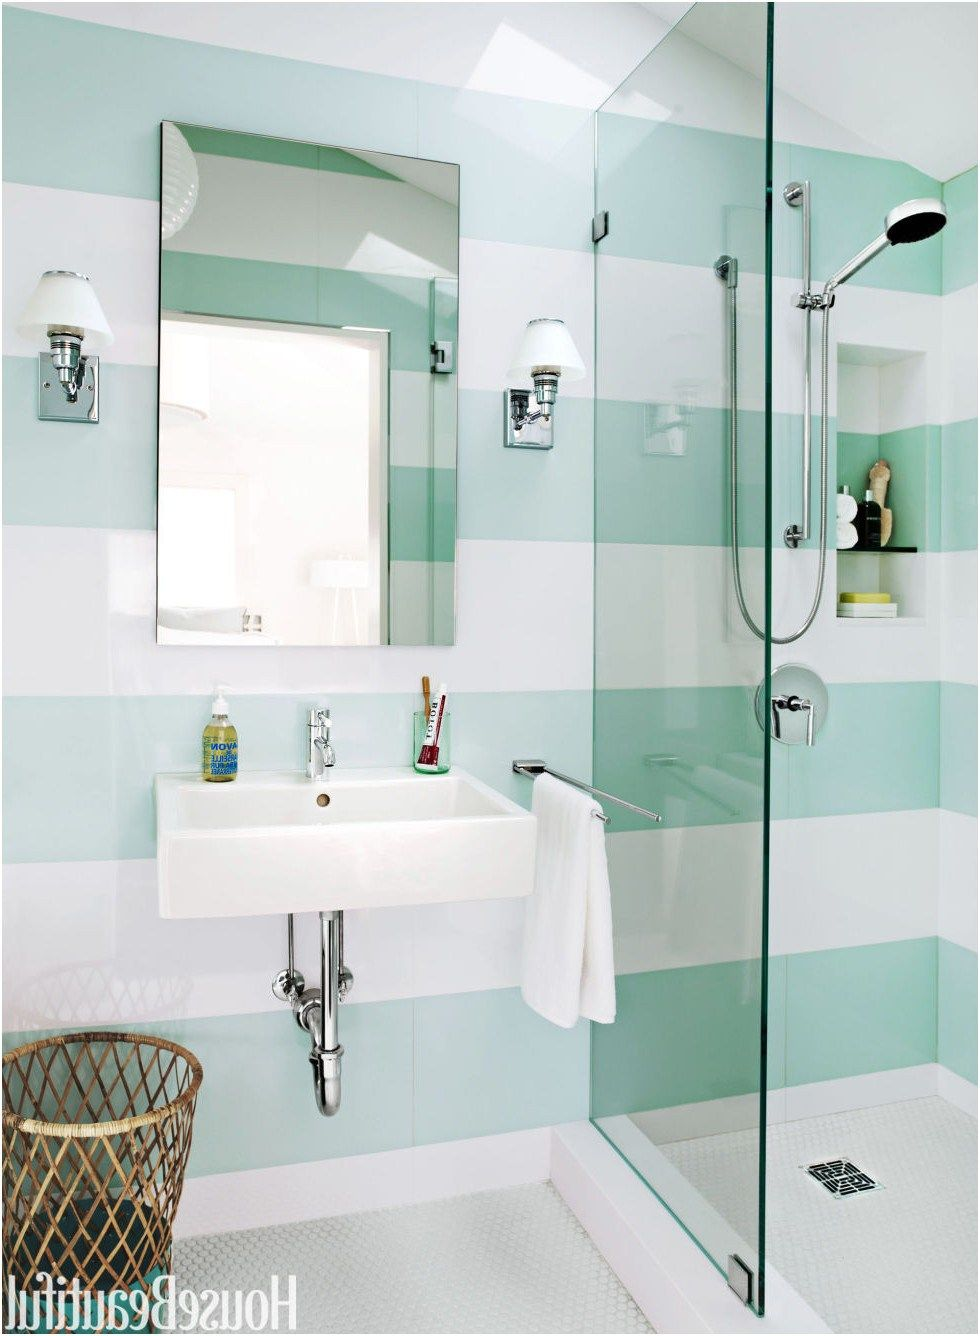 Best Bathroom Designs In India 135 Best Bathroom Design Ideas Decor Pictures Of Stylish Modern